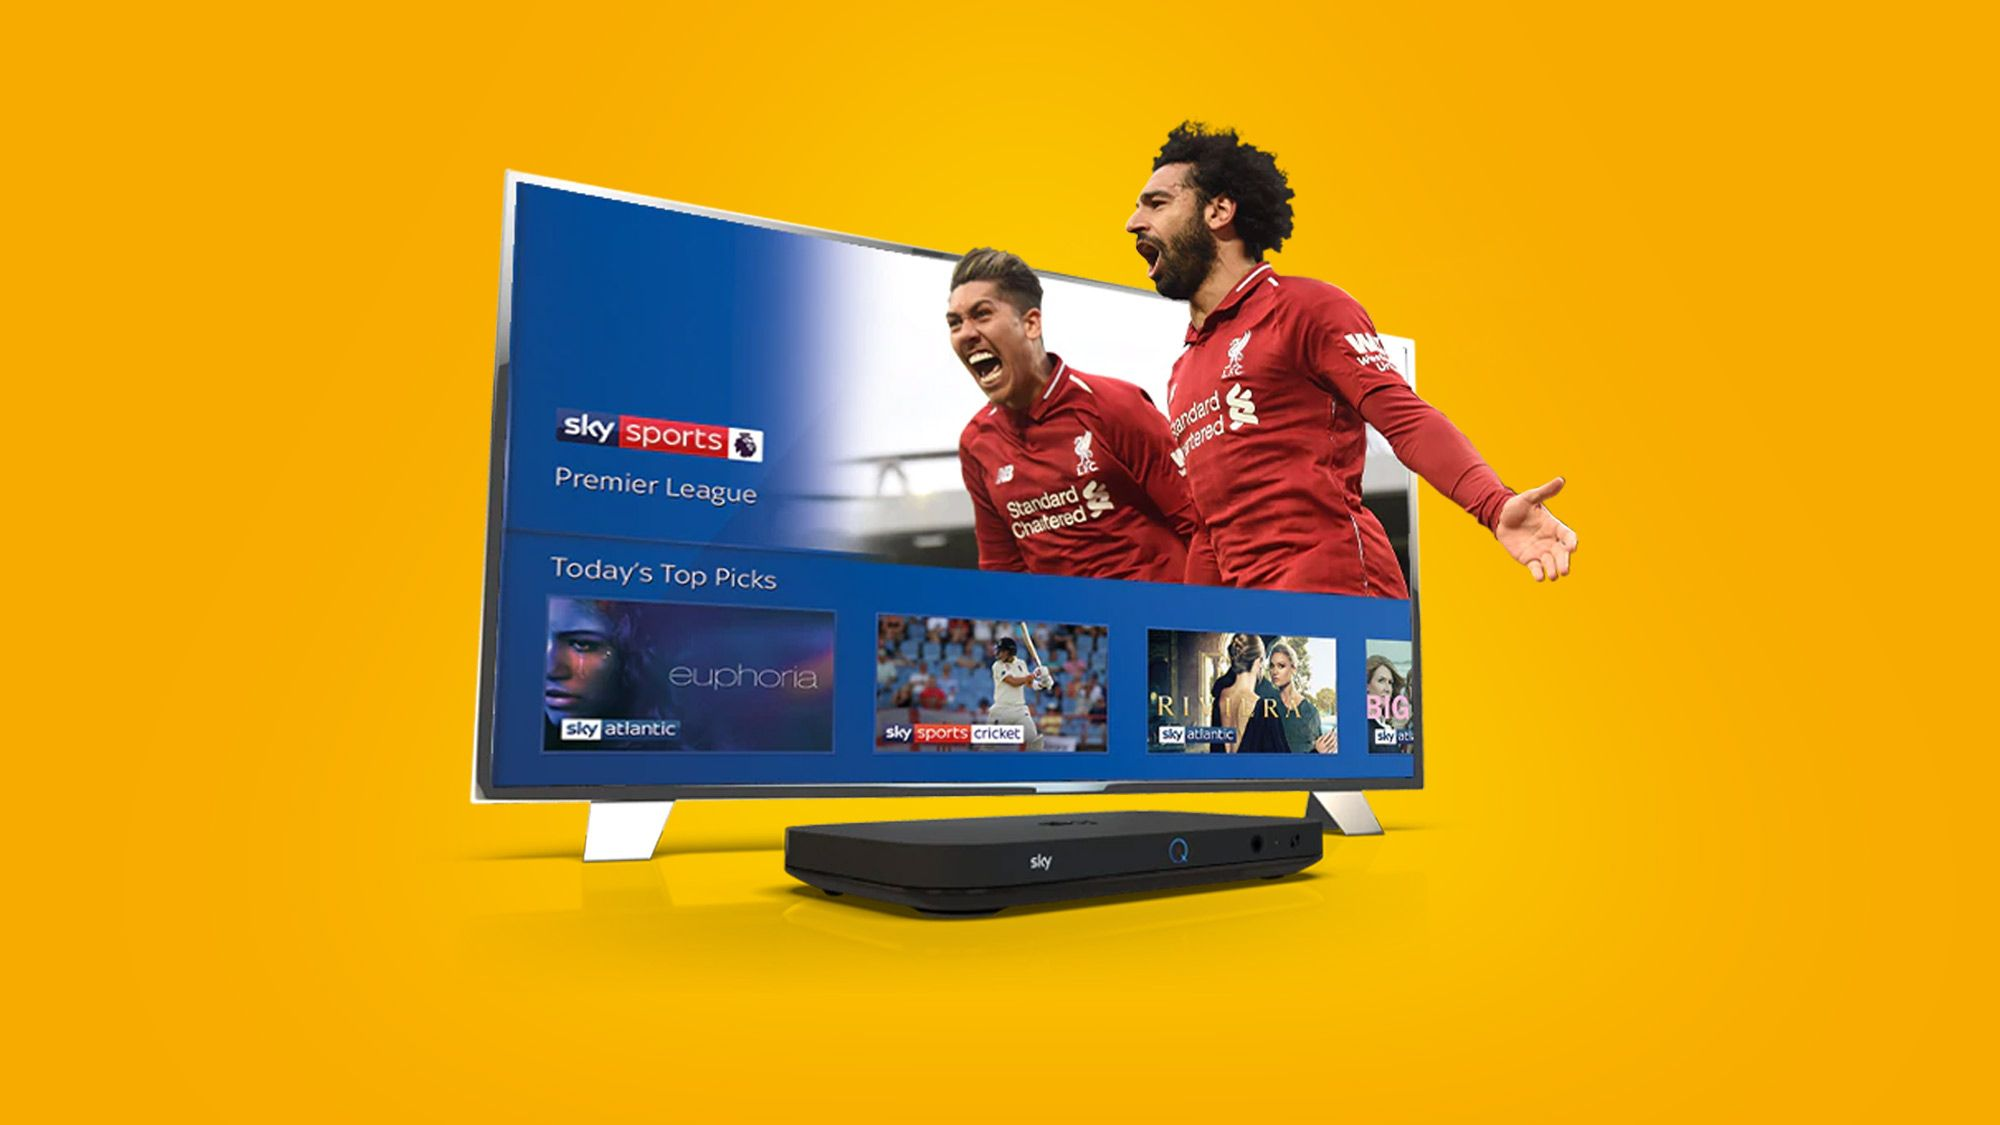 Save up to £250 with these Sky TV deals with Sky Sports